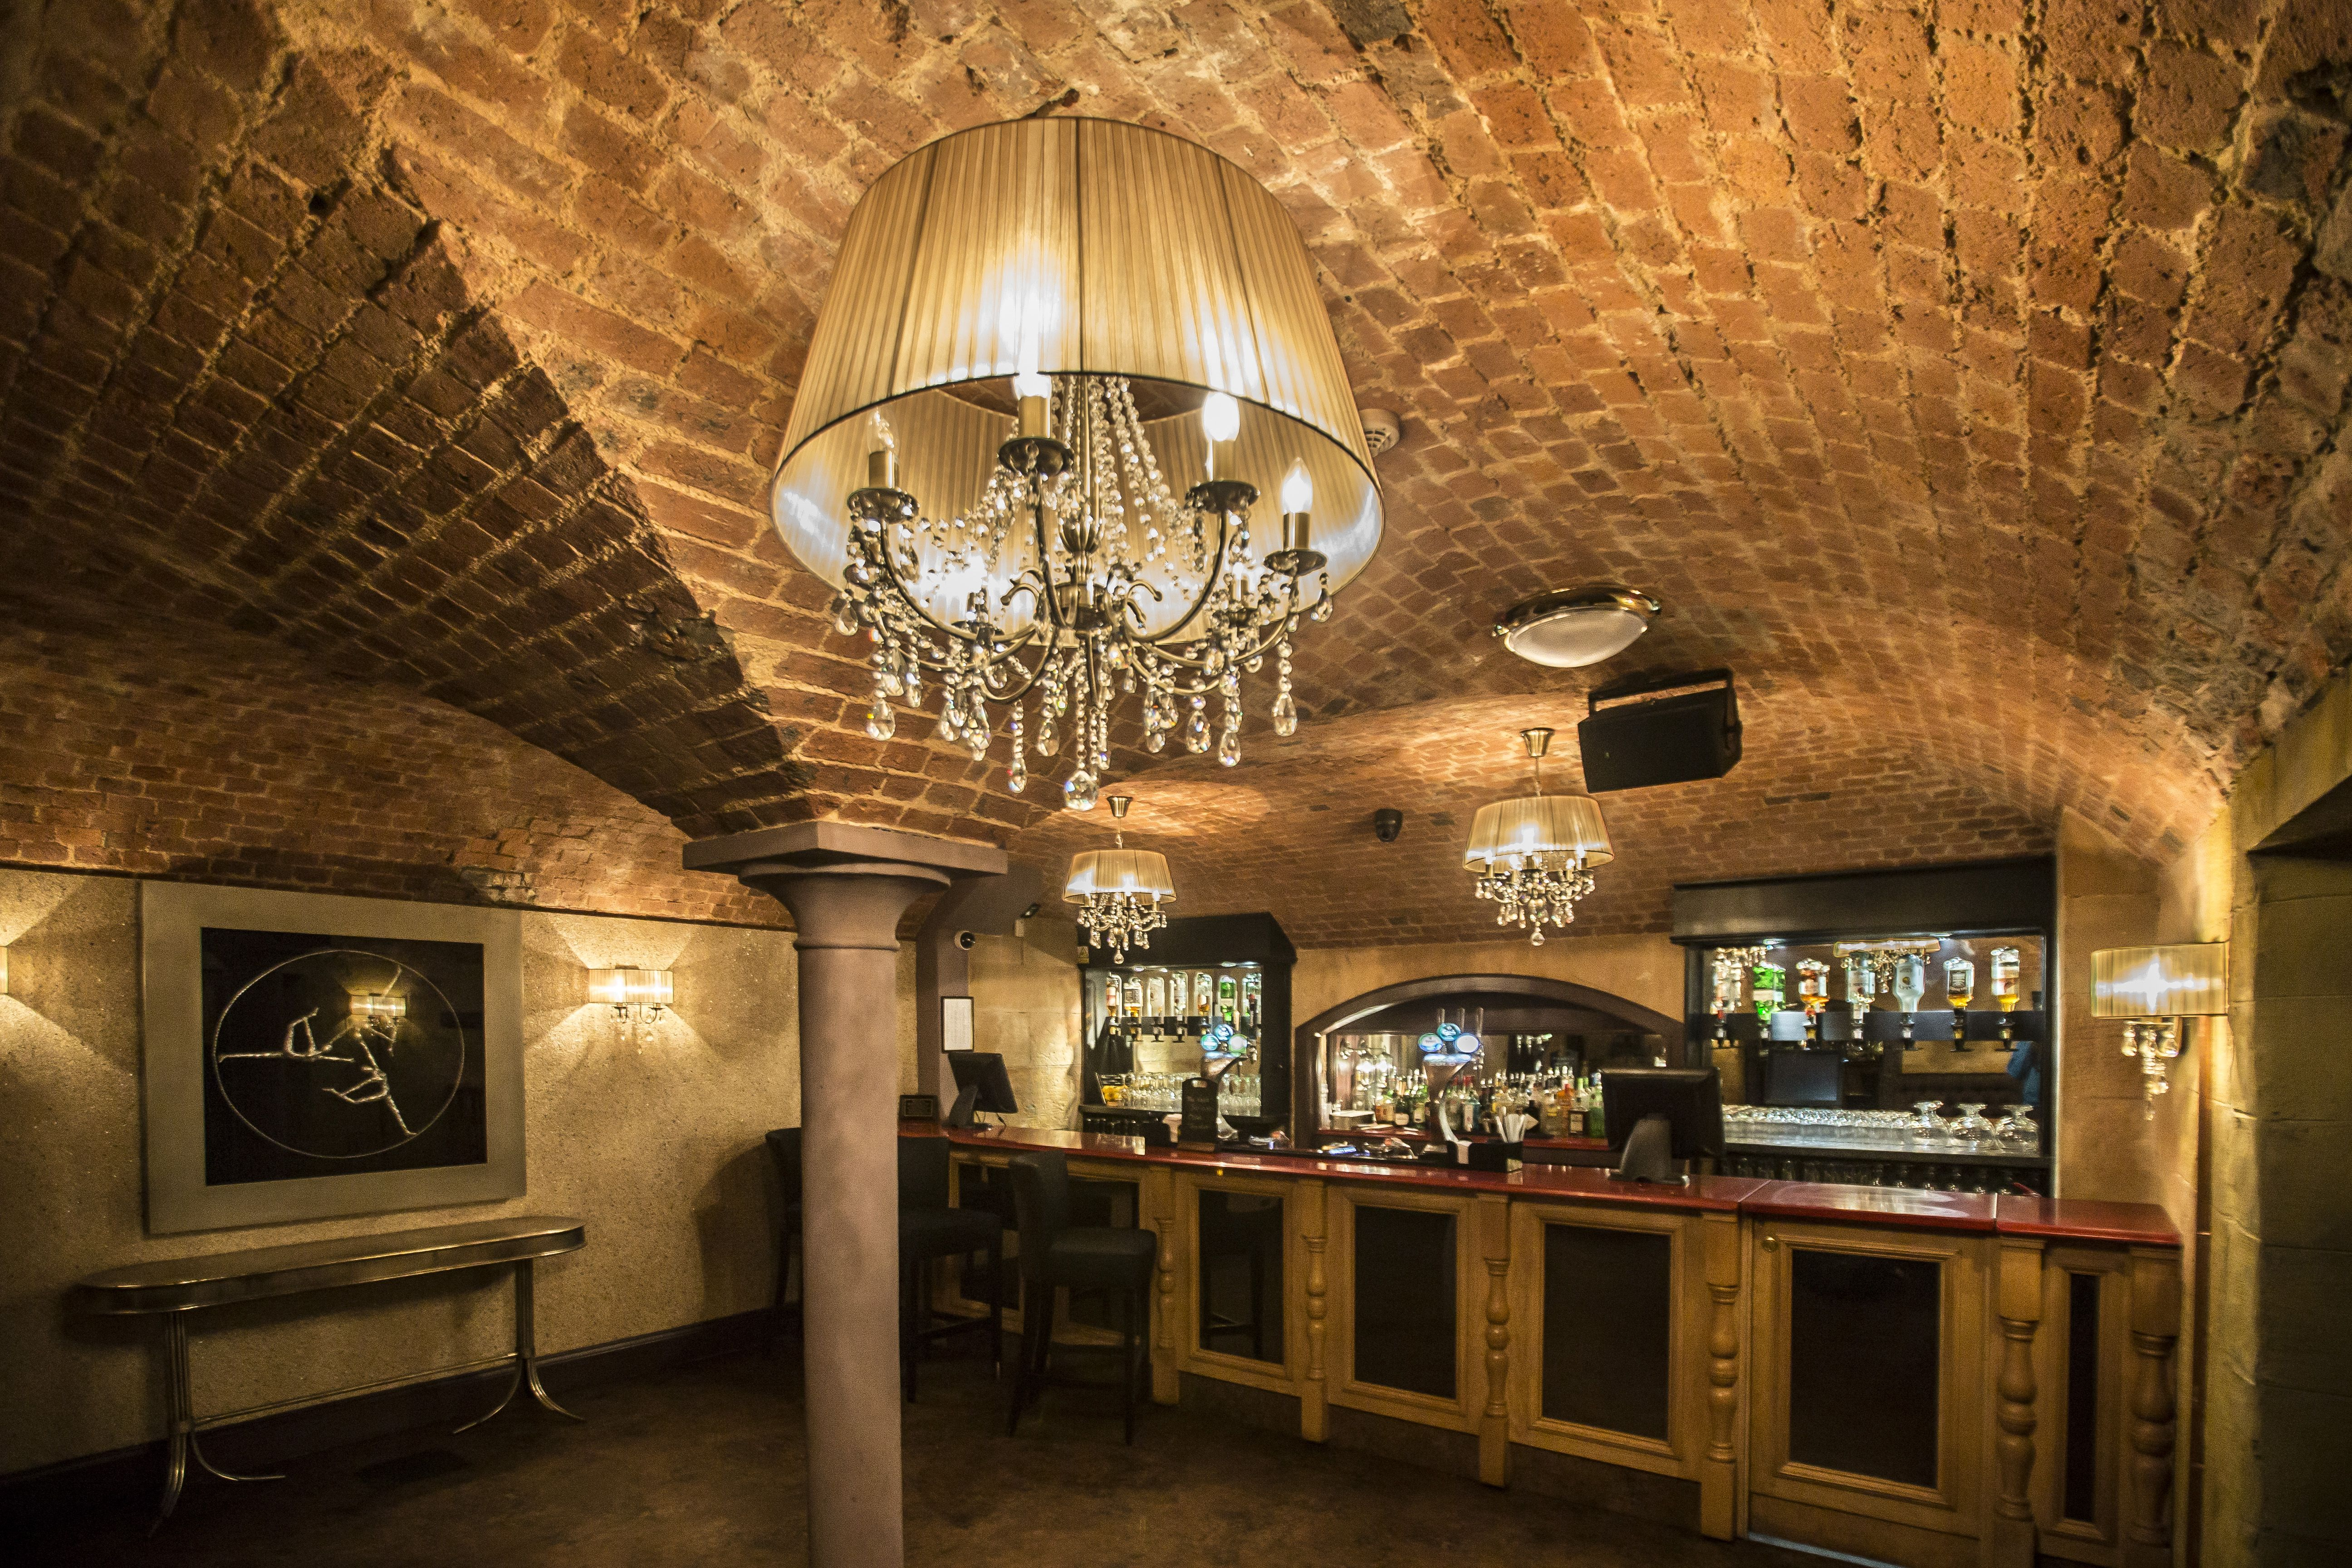 Exclusive wedding venue- The Vault Bar. Photography by Sean Elliot Photography.